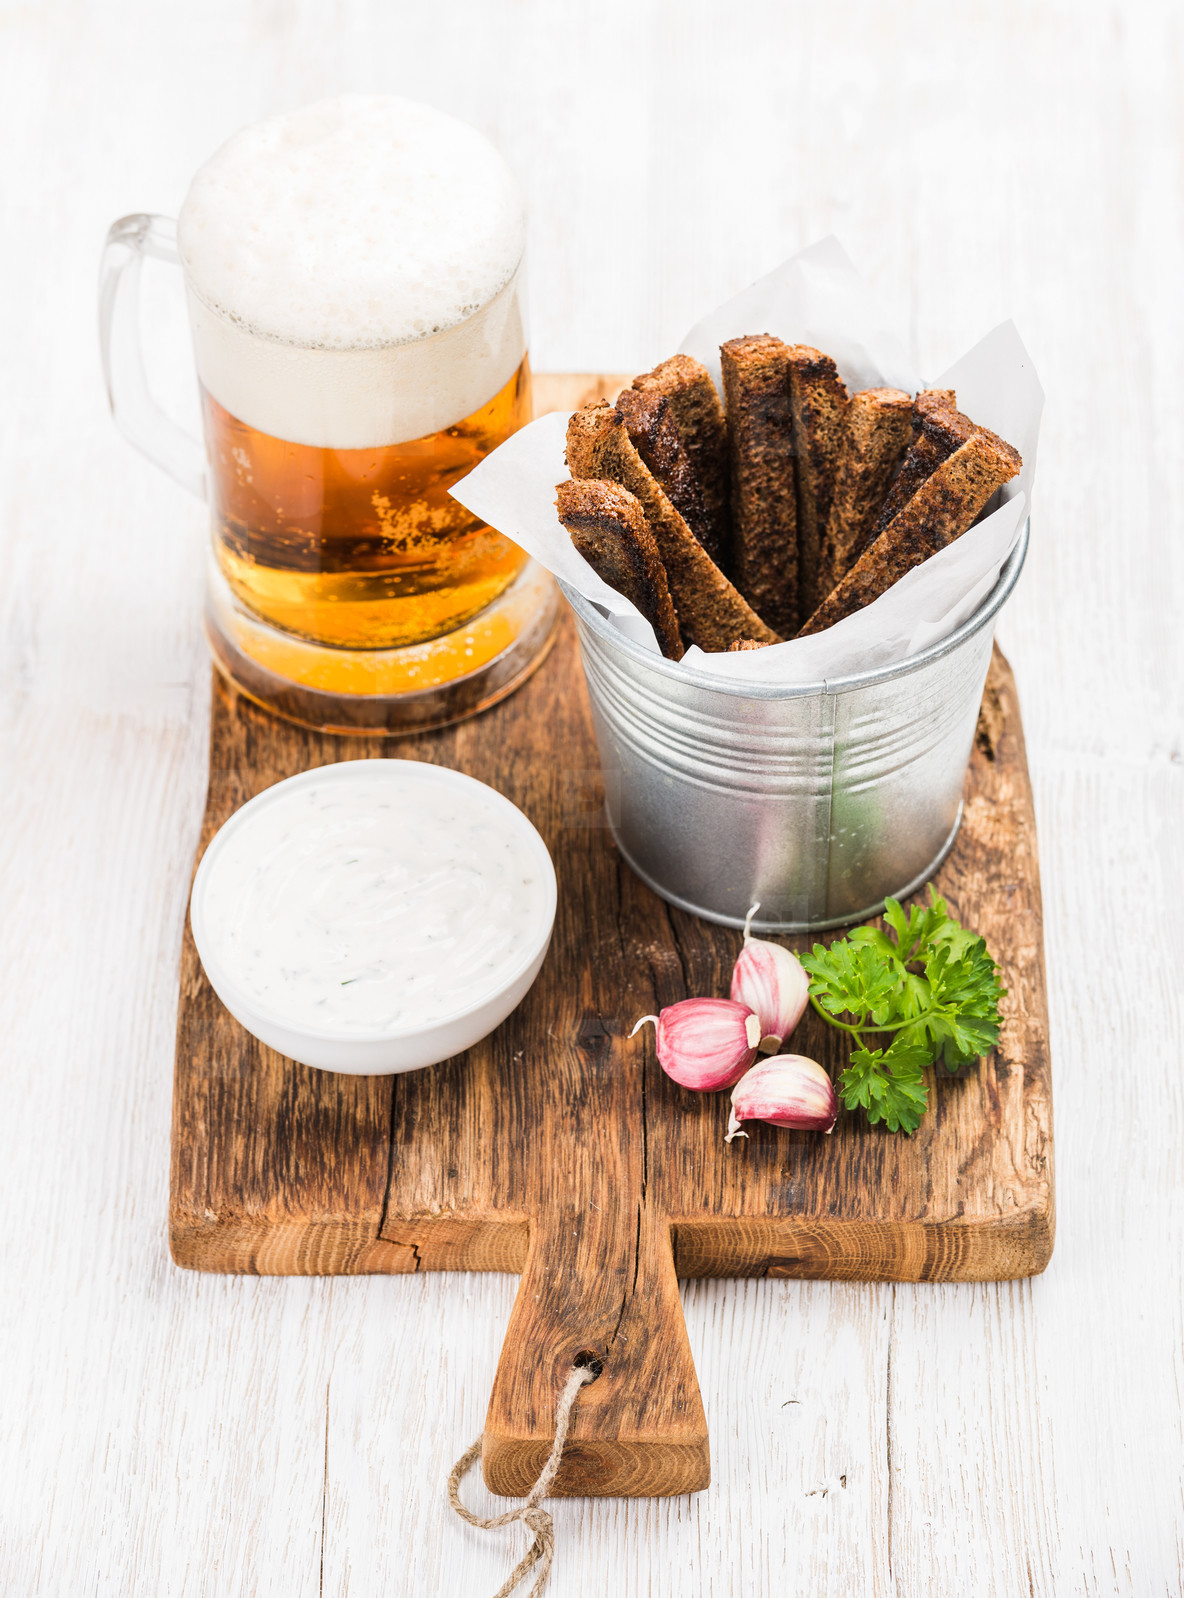 Beer snack set  Pint of pilsener in mug  open glass bottle  rye bread croutons with garlic cream cheese sauce and fresh parsley on rustic wooden board over white painted old background